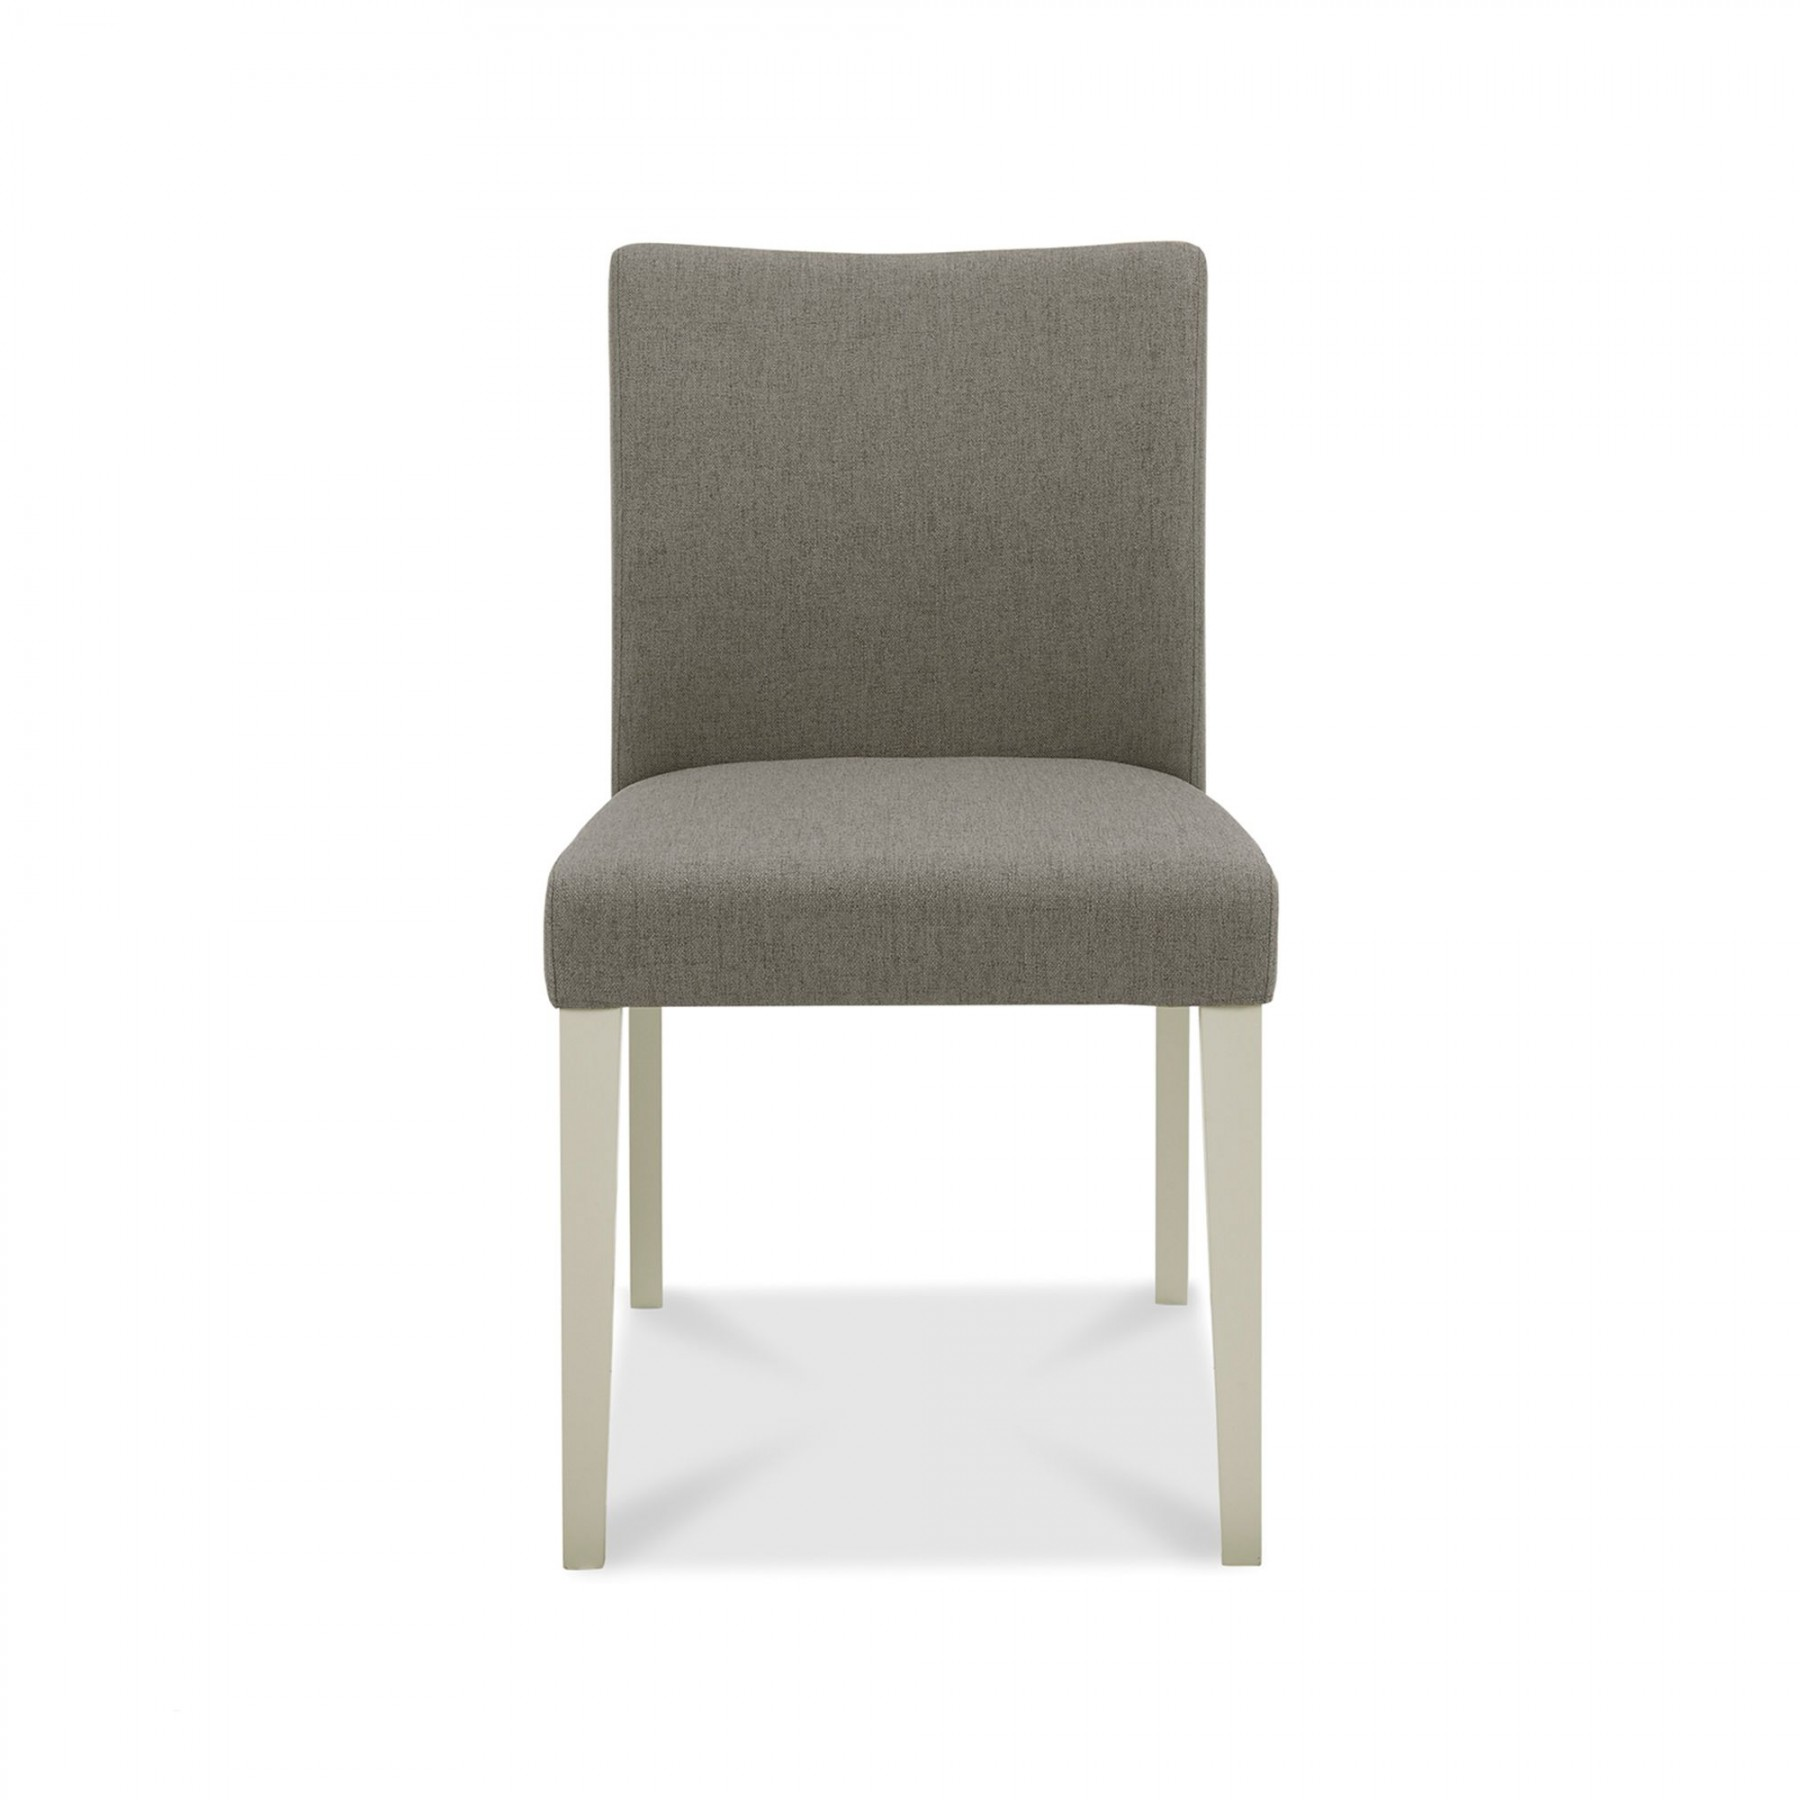 Oakley Grey Upholstered Grey Chair